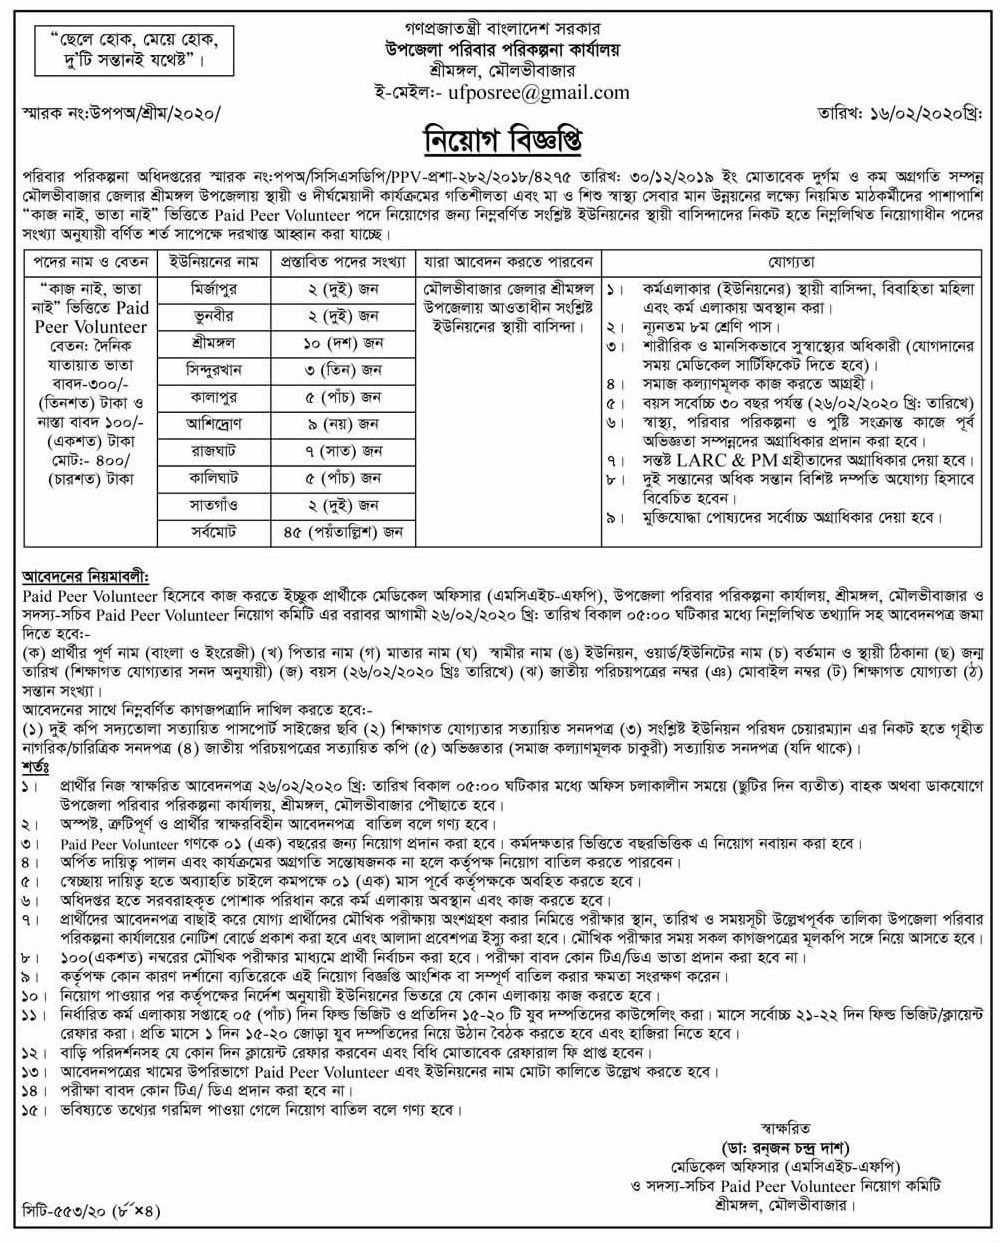 Sreemangal family planning office Moulvibazar Job Circular 2020